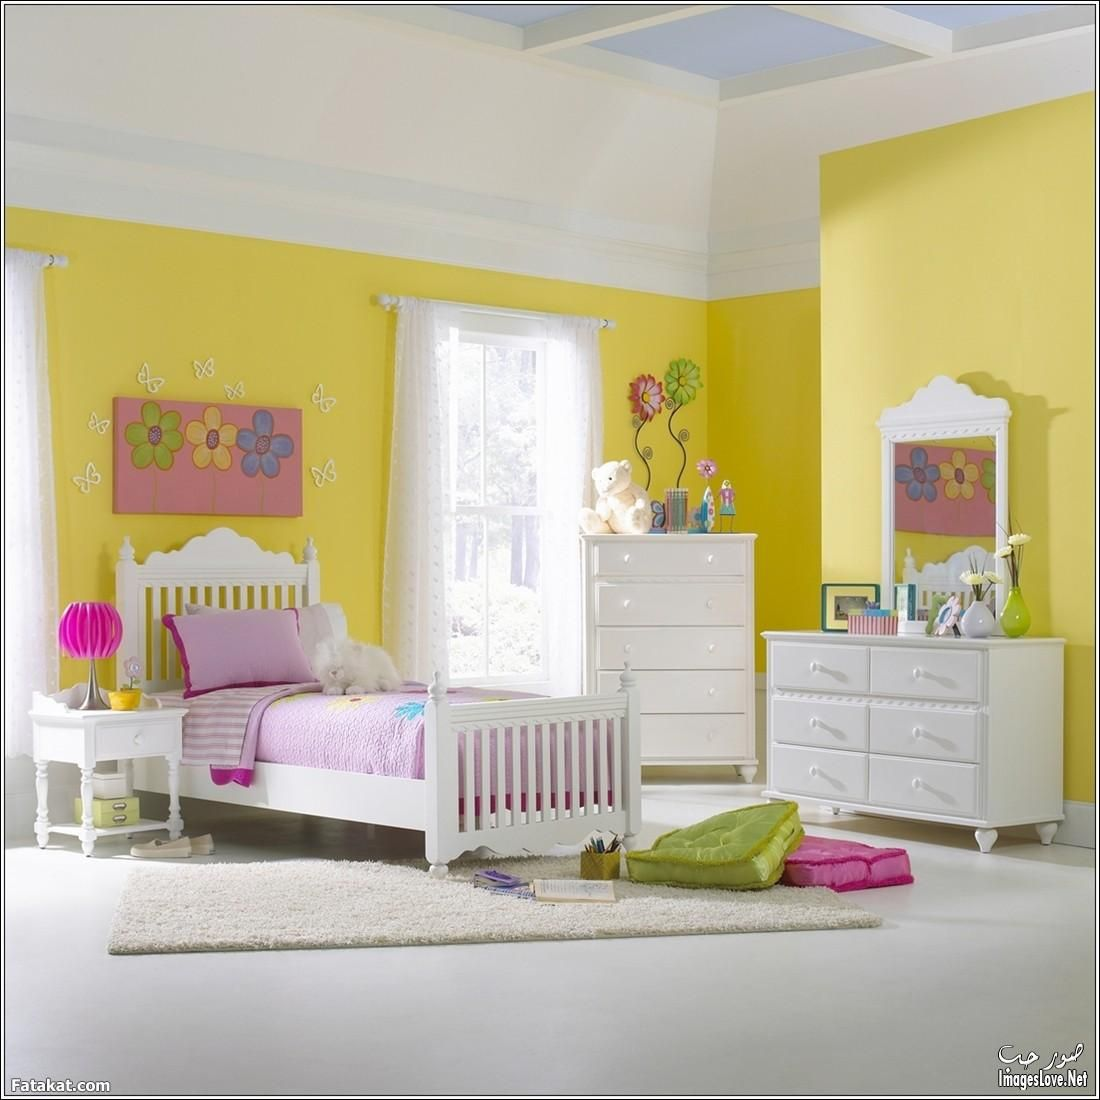 my little pony bedroom - Google Search | Daughter\'s future room ...